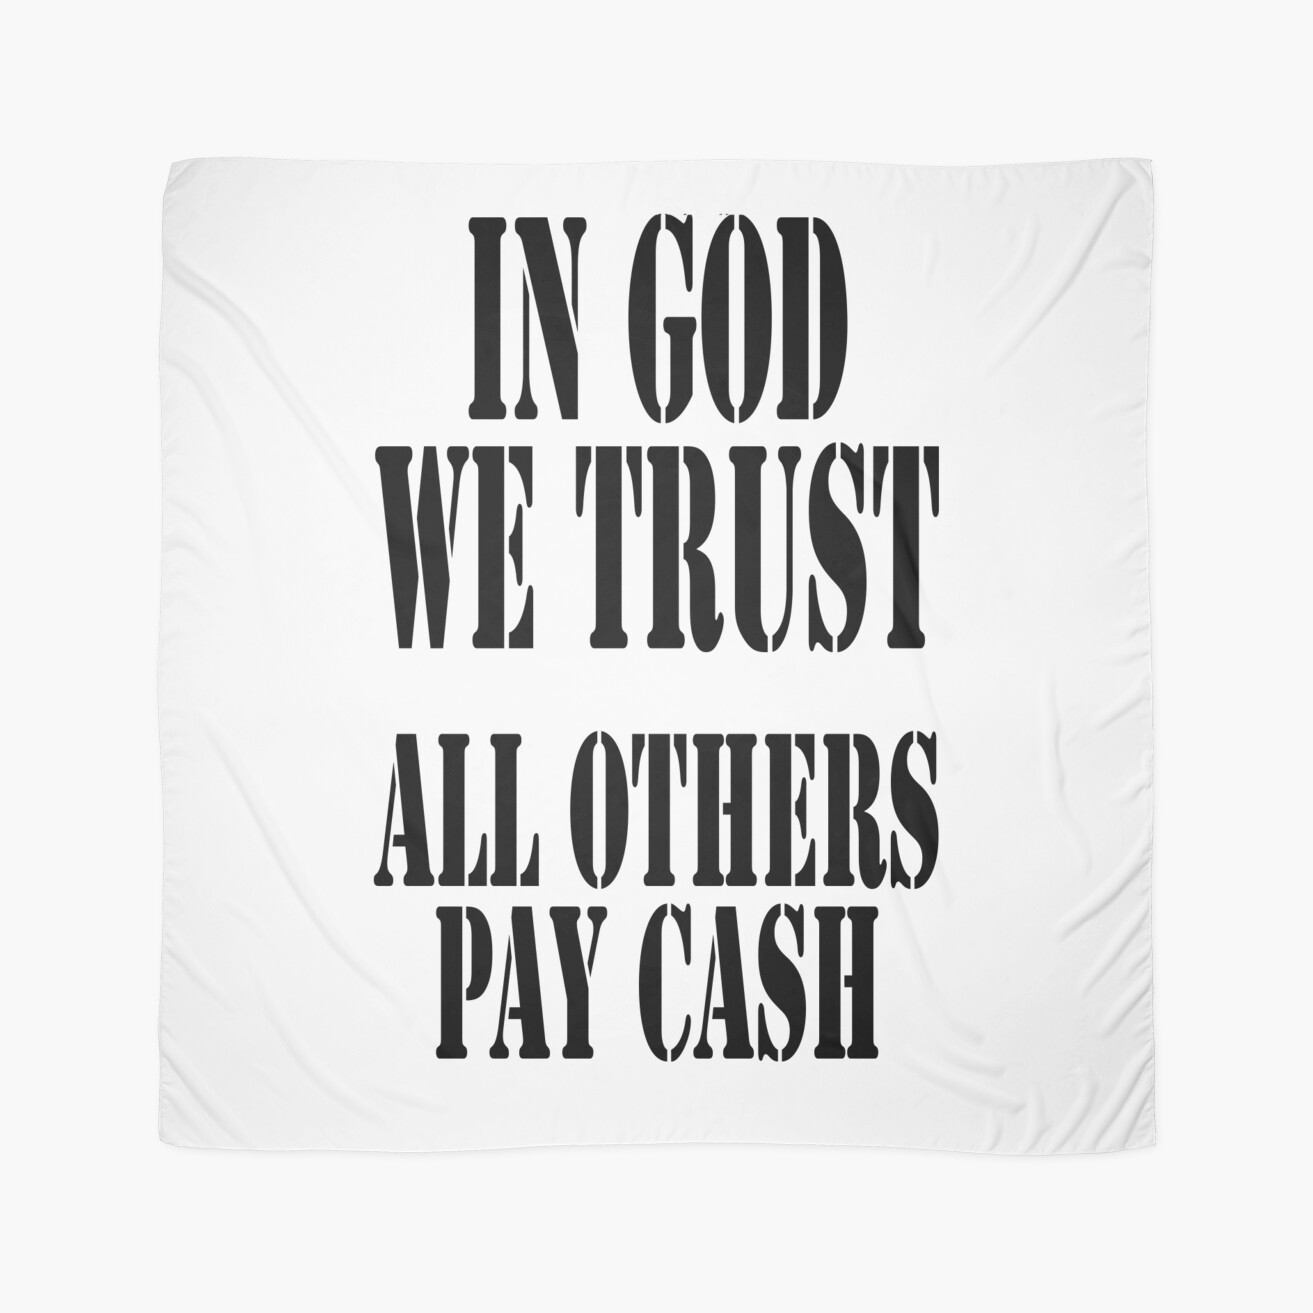 PAY UP!, IN GOD WE TRUST, ALL OTHERS PAY CASH\